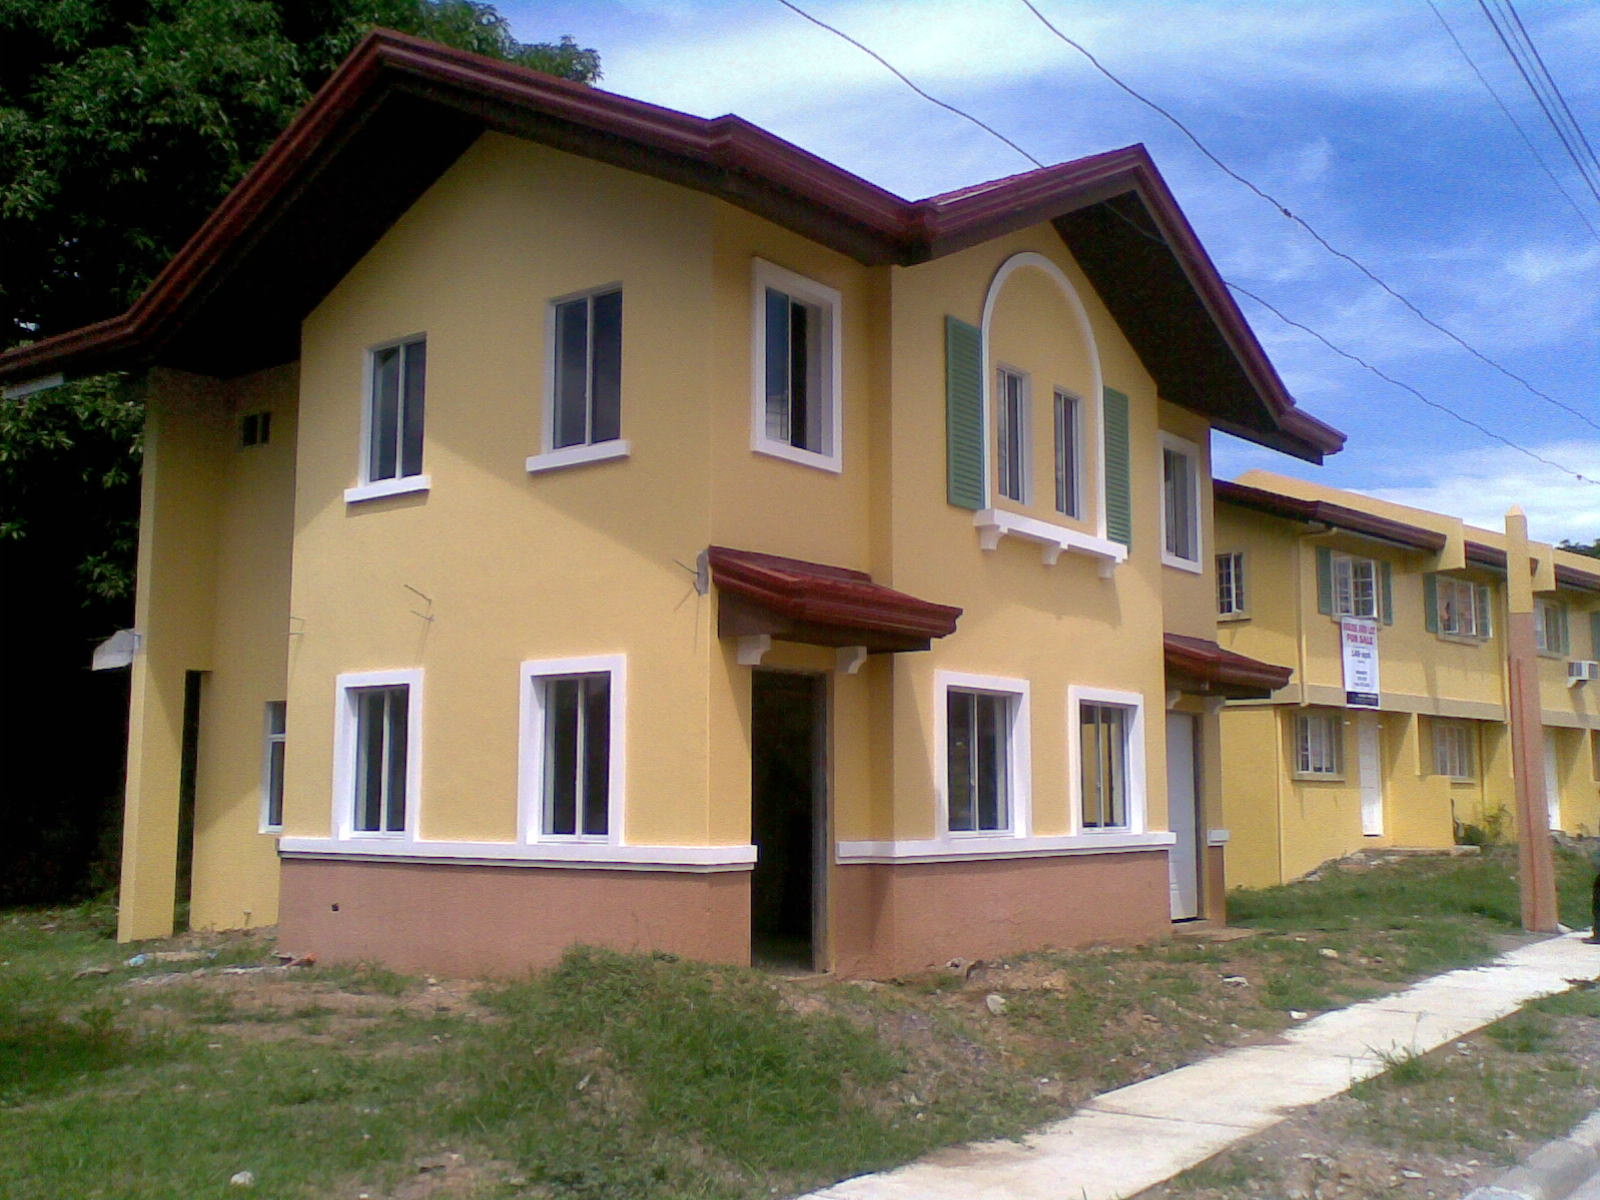 Residential house and lot for sale at Kauswagan, Santa Barbara subdivision, Cagayan de oro City, Misamis Oriental, Philippines